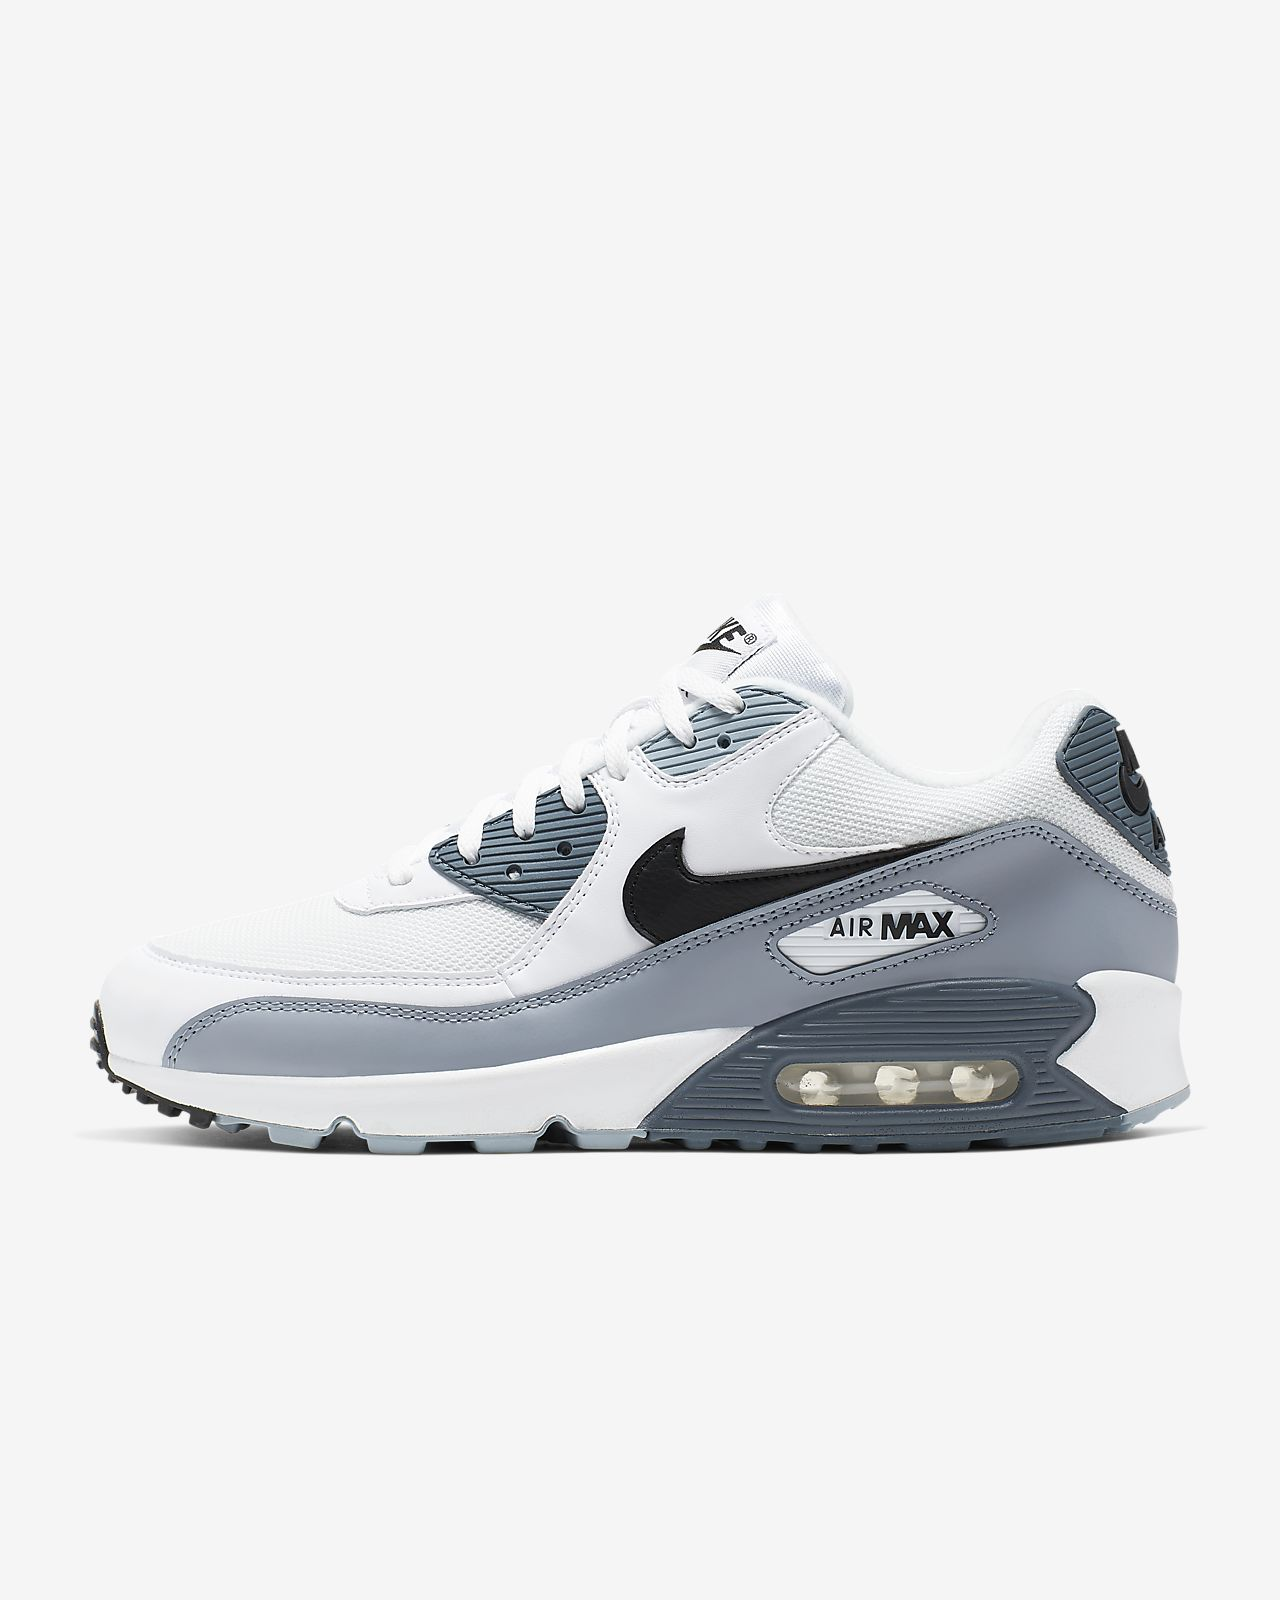 save off 86376 9abd9 ... Skon Nike Air Max 90 Essential för män